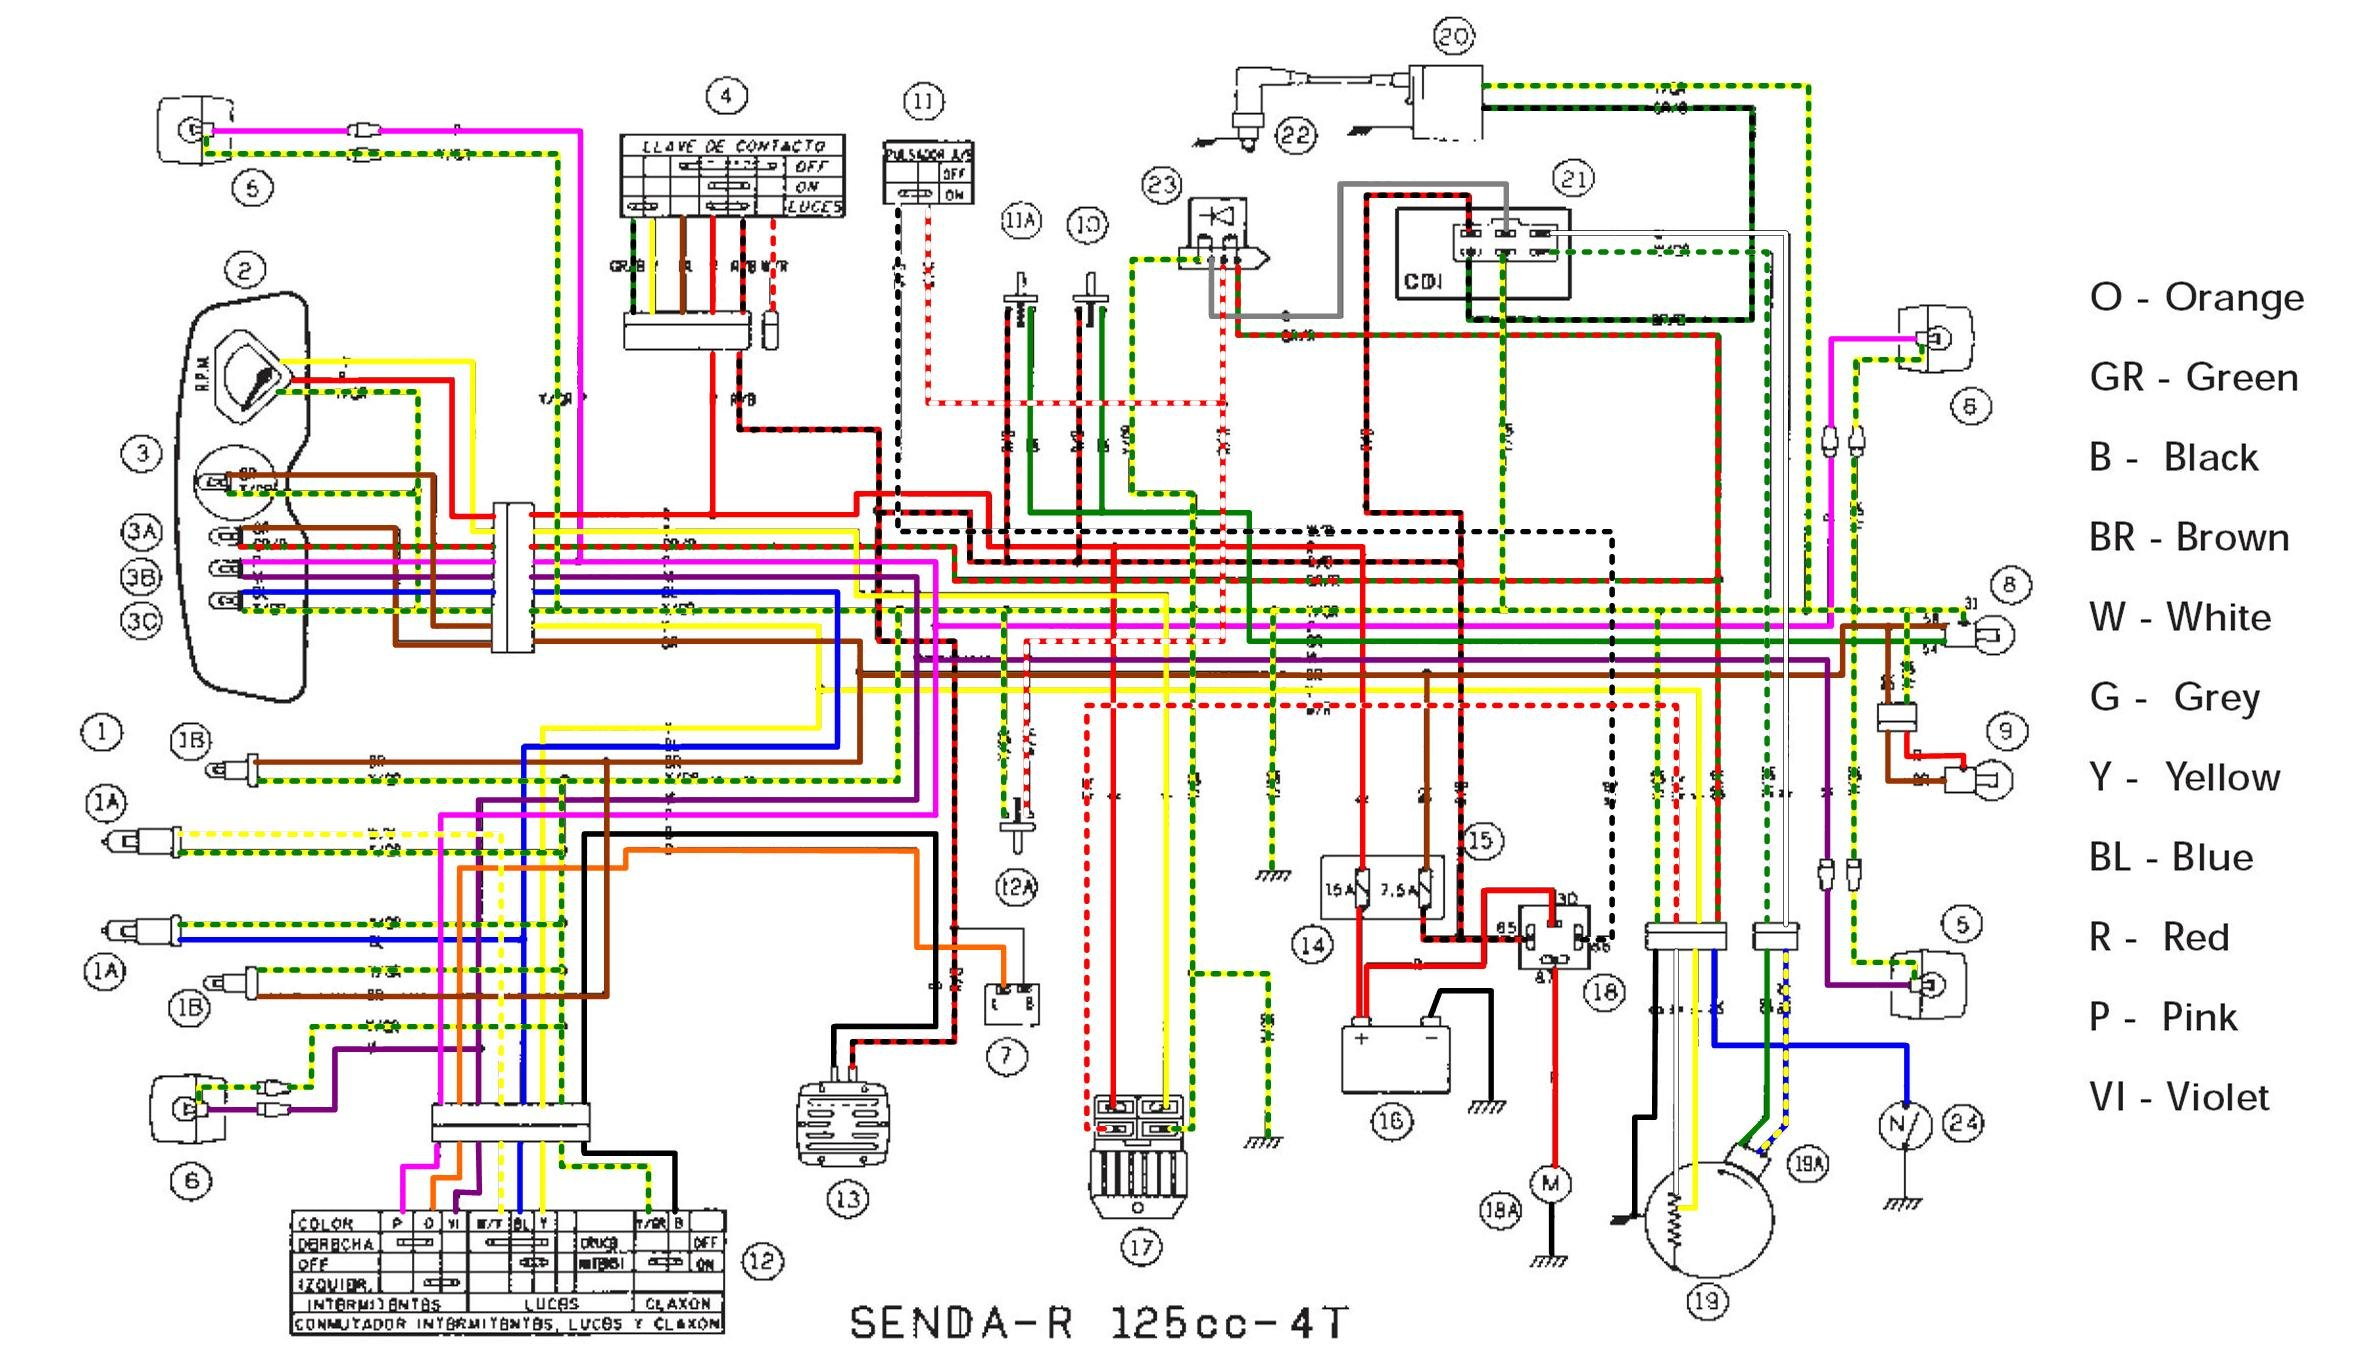 Xtreme Wiring Diagram Ktm 525 Exc Library Diagrams